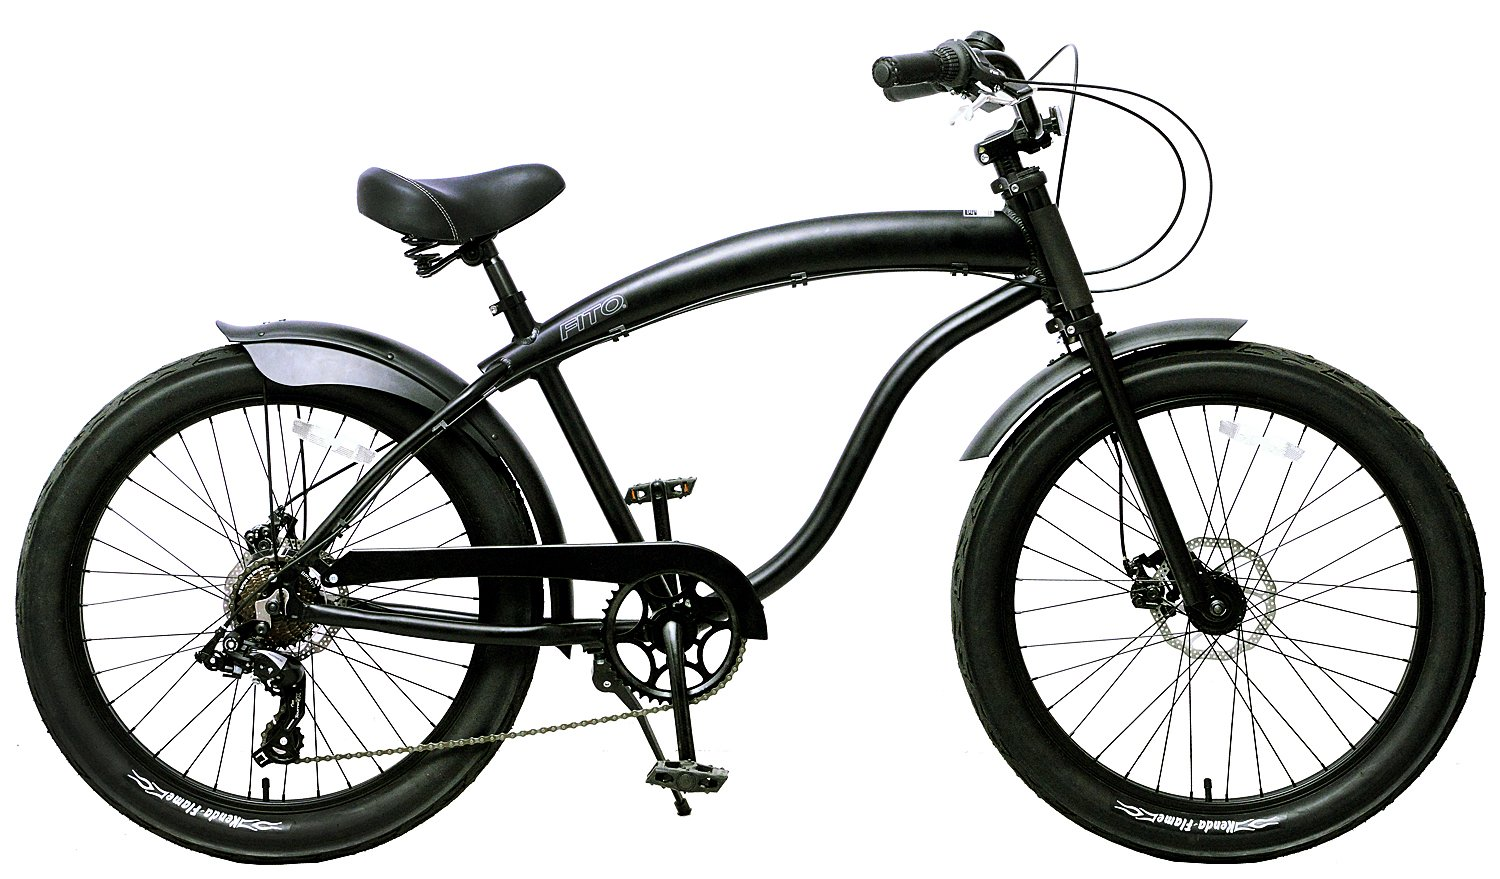 Fito Men's Modena GT-2 Aluminum Alloy 7-Speed Beach Cruiser Bike